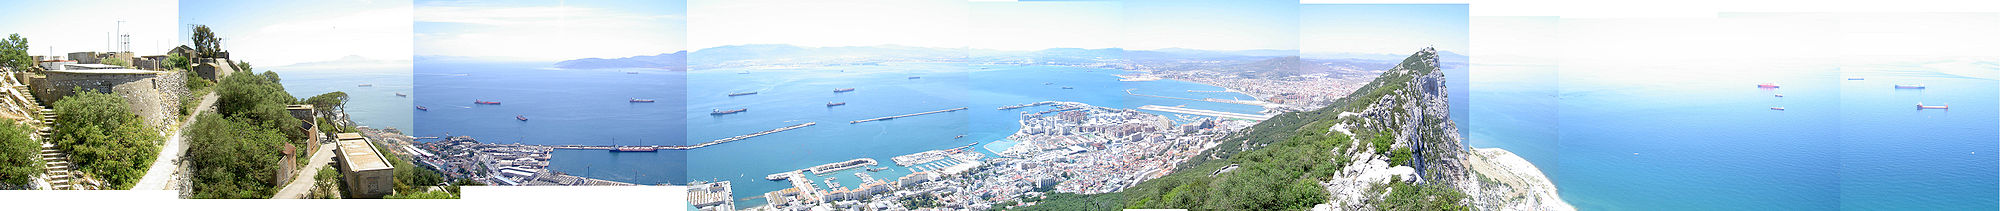 270 degree view from Gibraltar.jpg